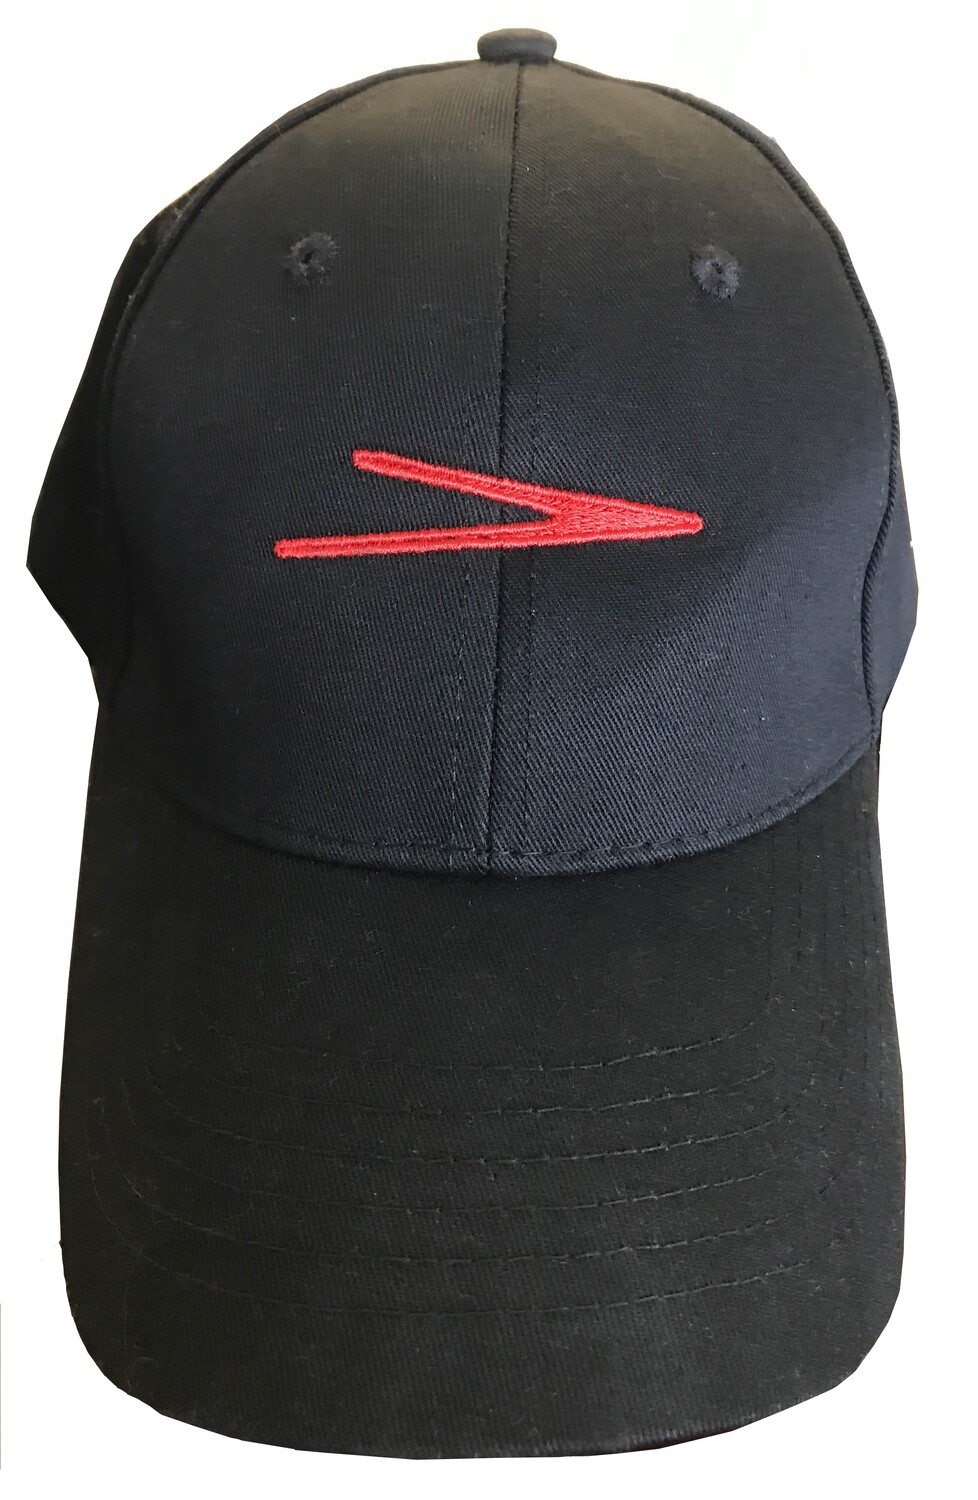 Skyway embroidered cap